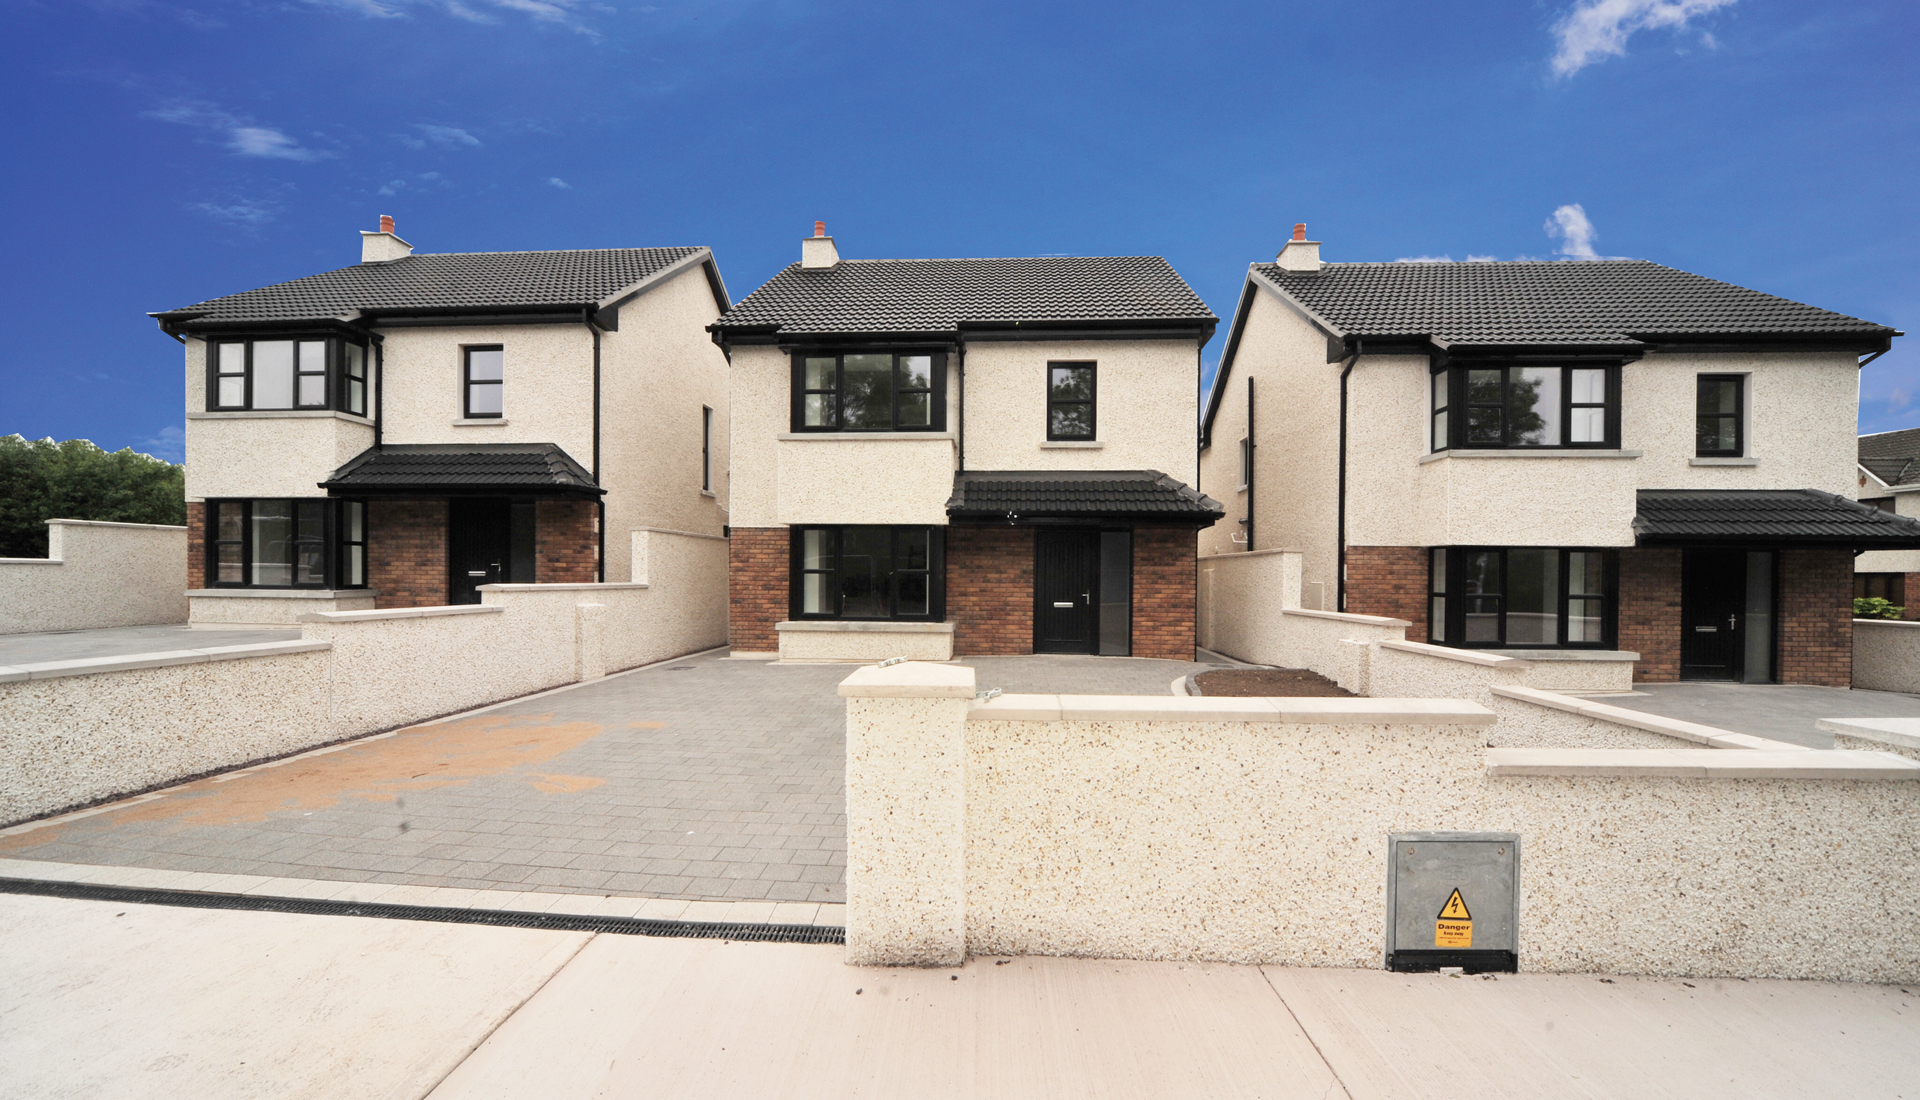 4 bed detached Luxury A-rated homes